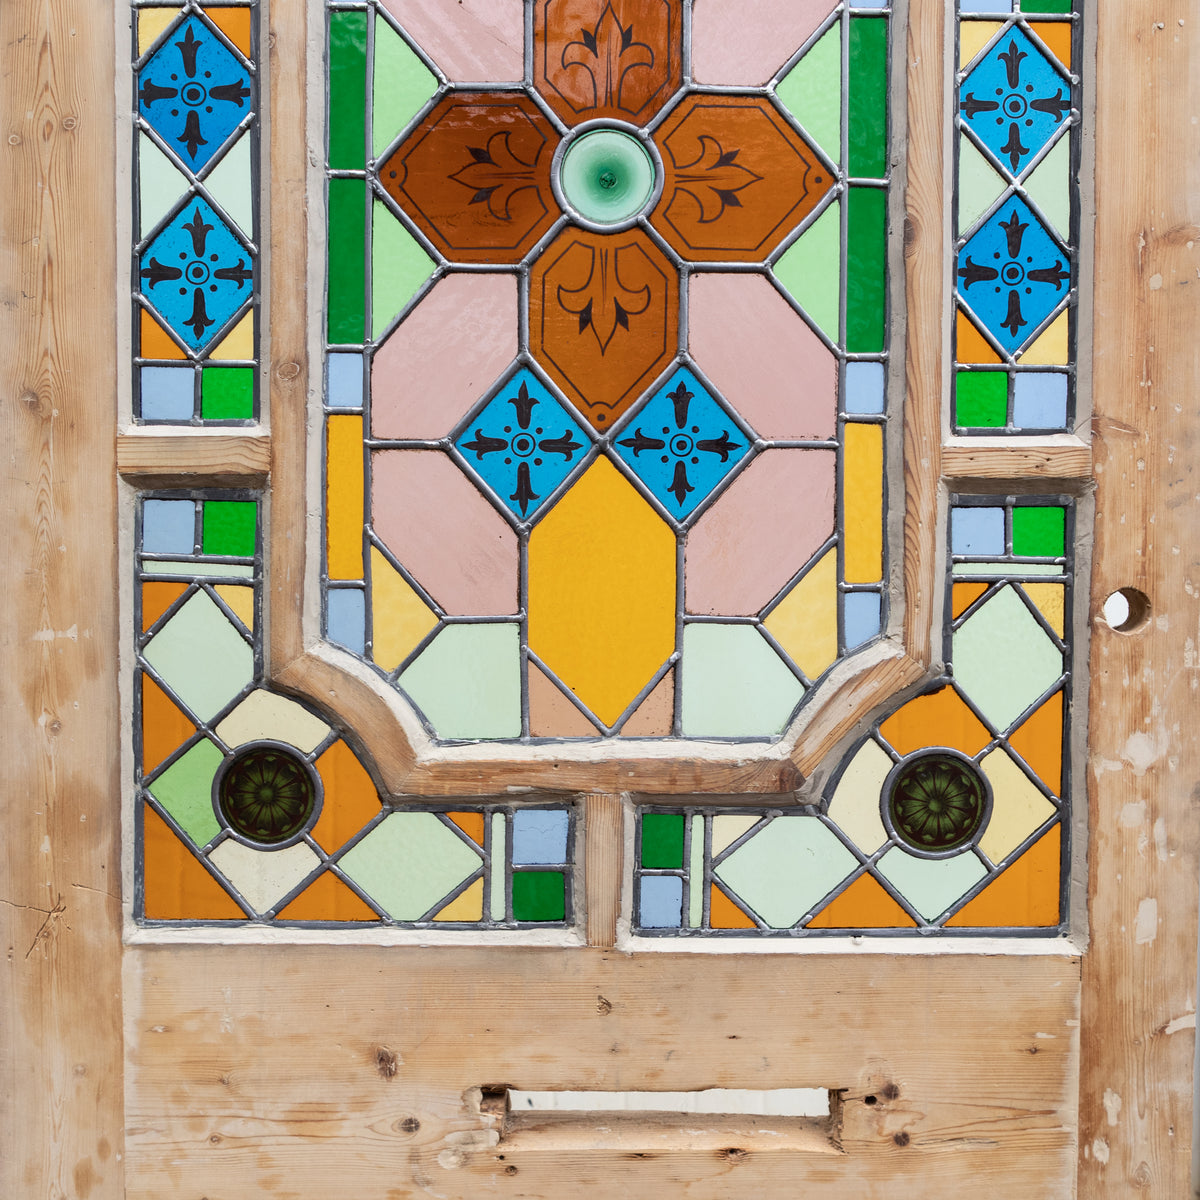 Spectacular Antique Victorian Stained Glass Door - 212.5cm x 91cm | The Architectural Forum